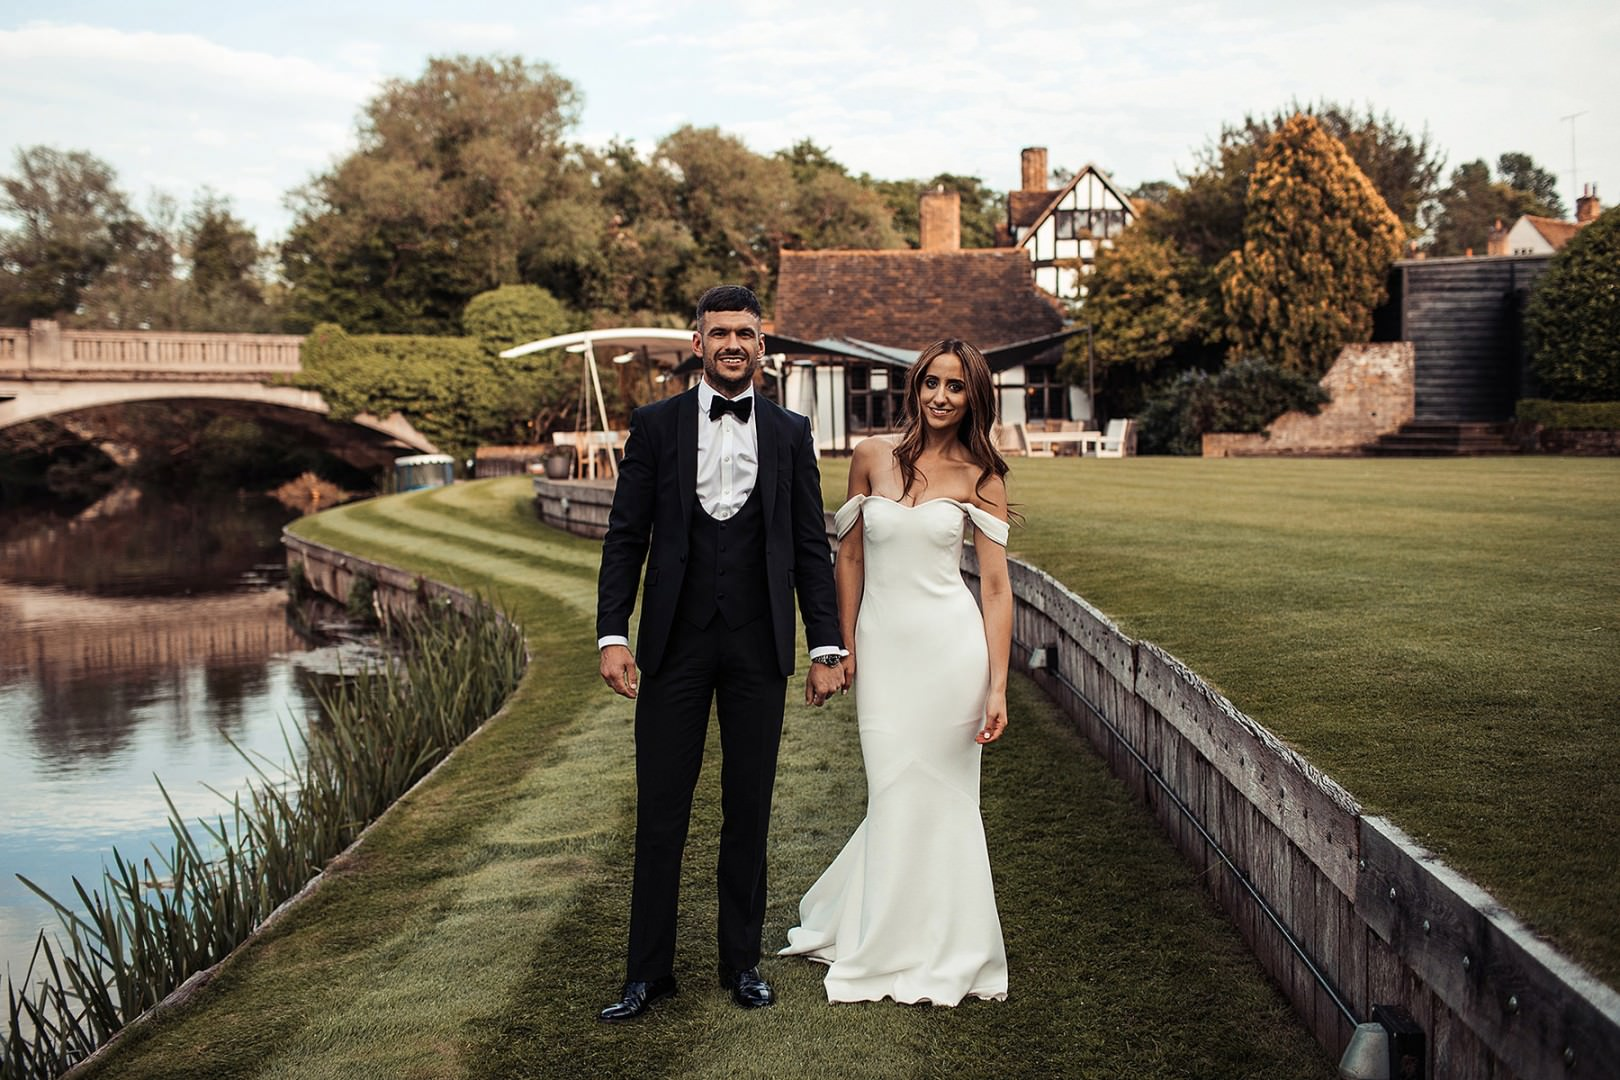 Wedding Open Day at Le Talbooth in Dedham